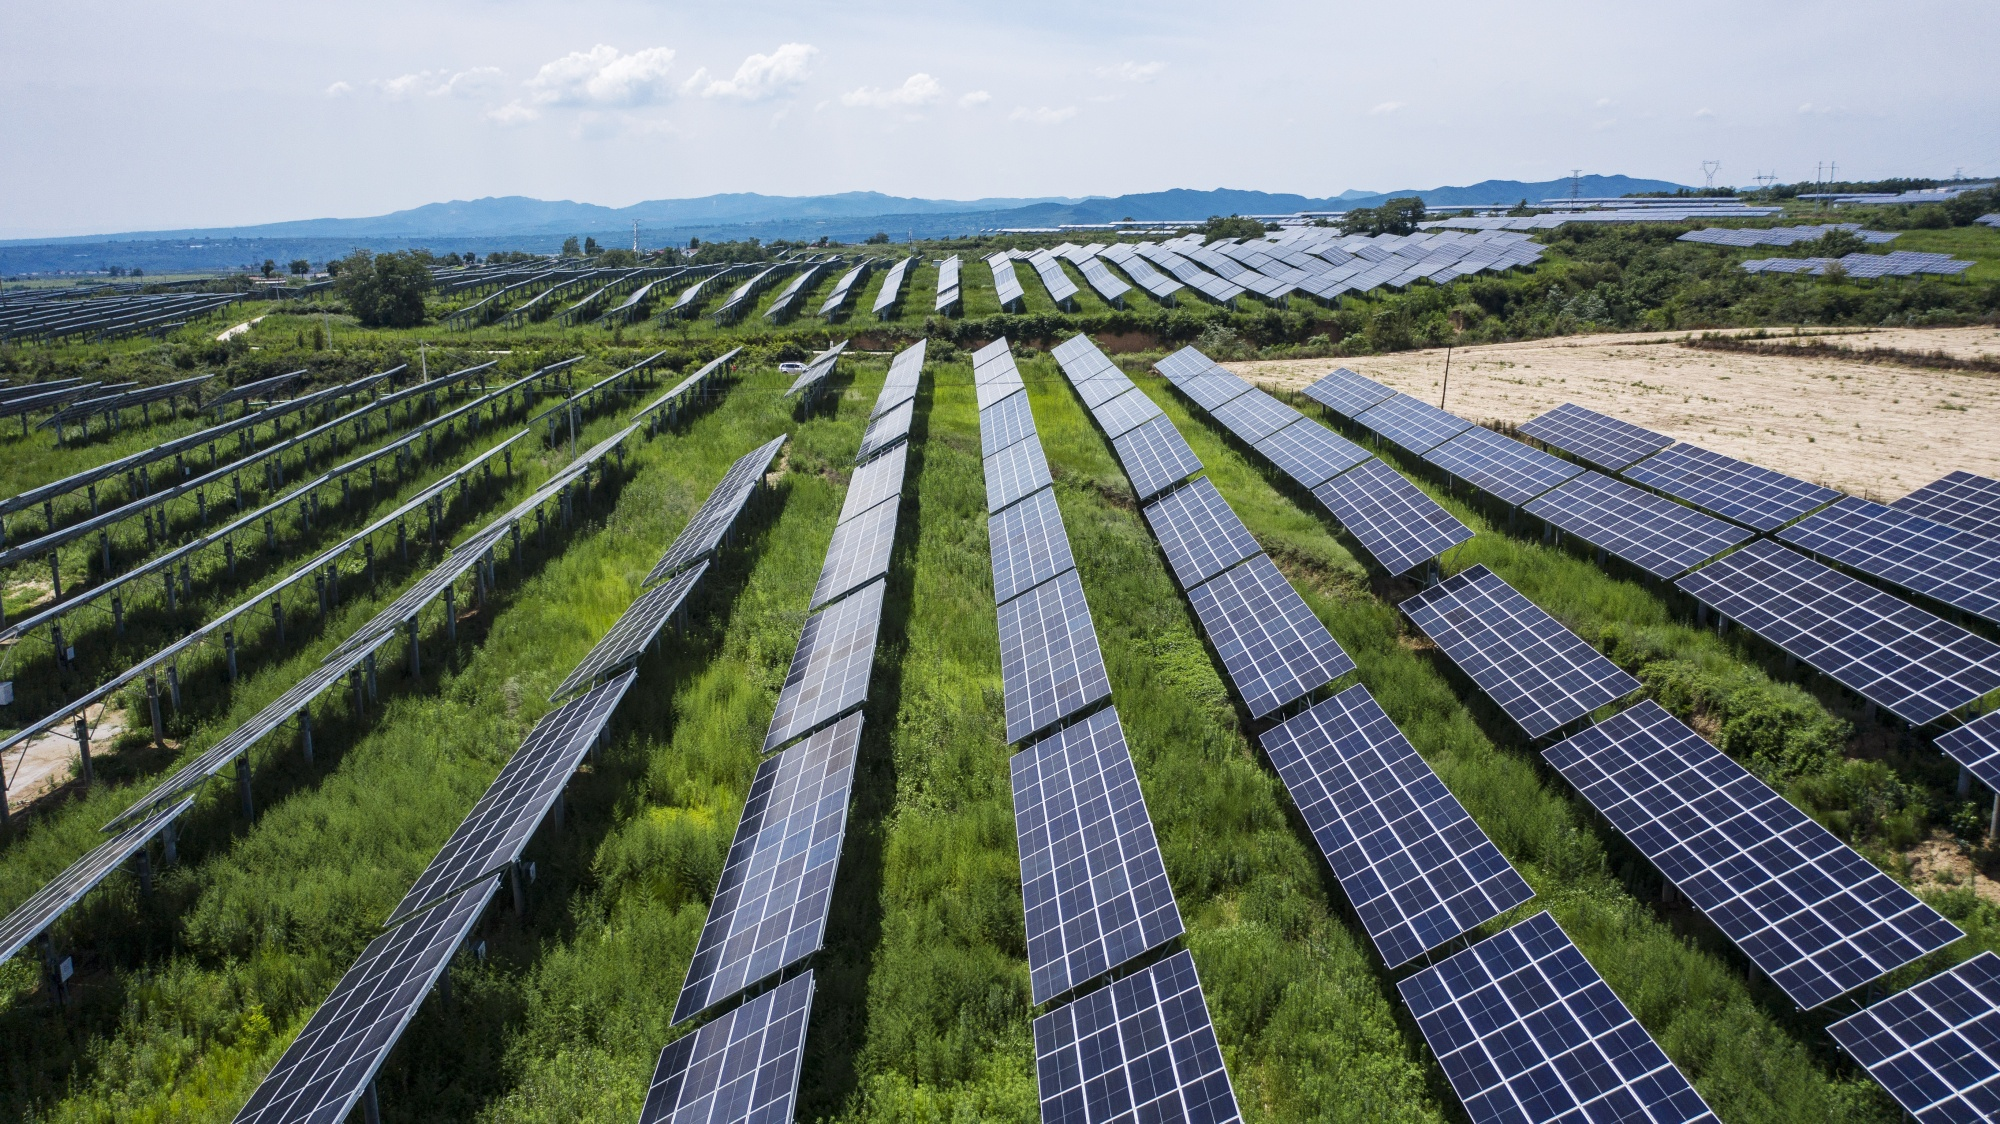 Glass Shortage Threatens Solar Panels Needed for Climate Fix - Bloomberg